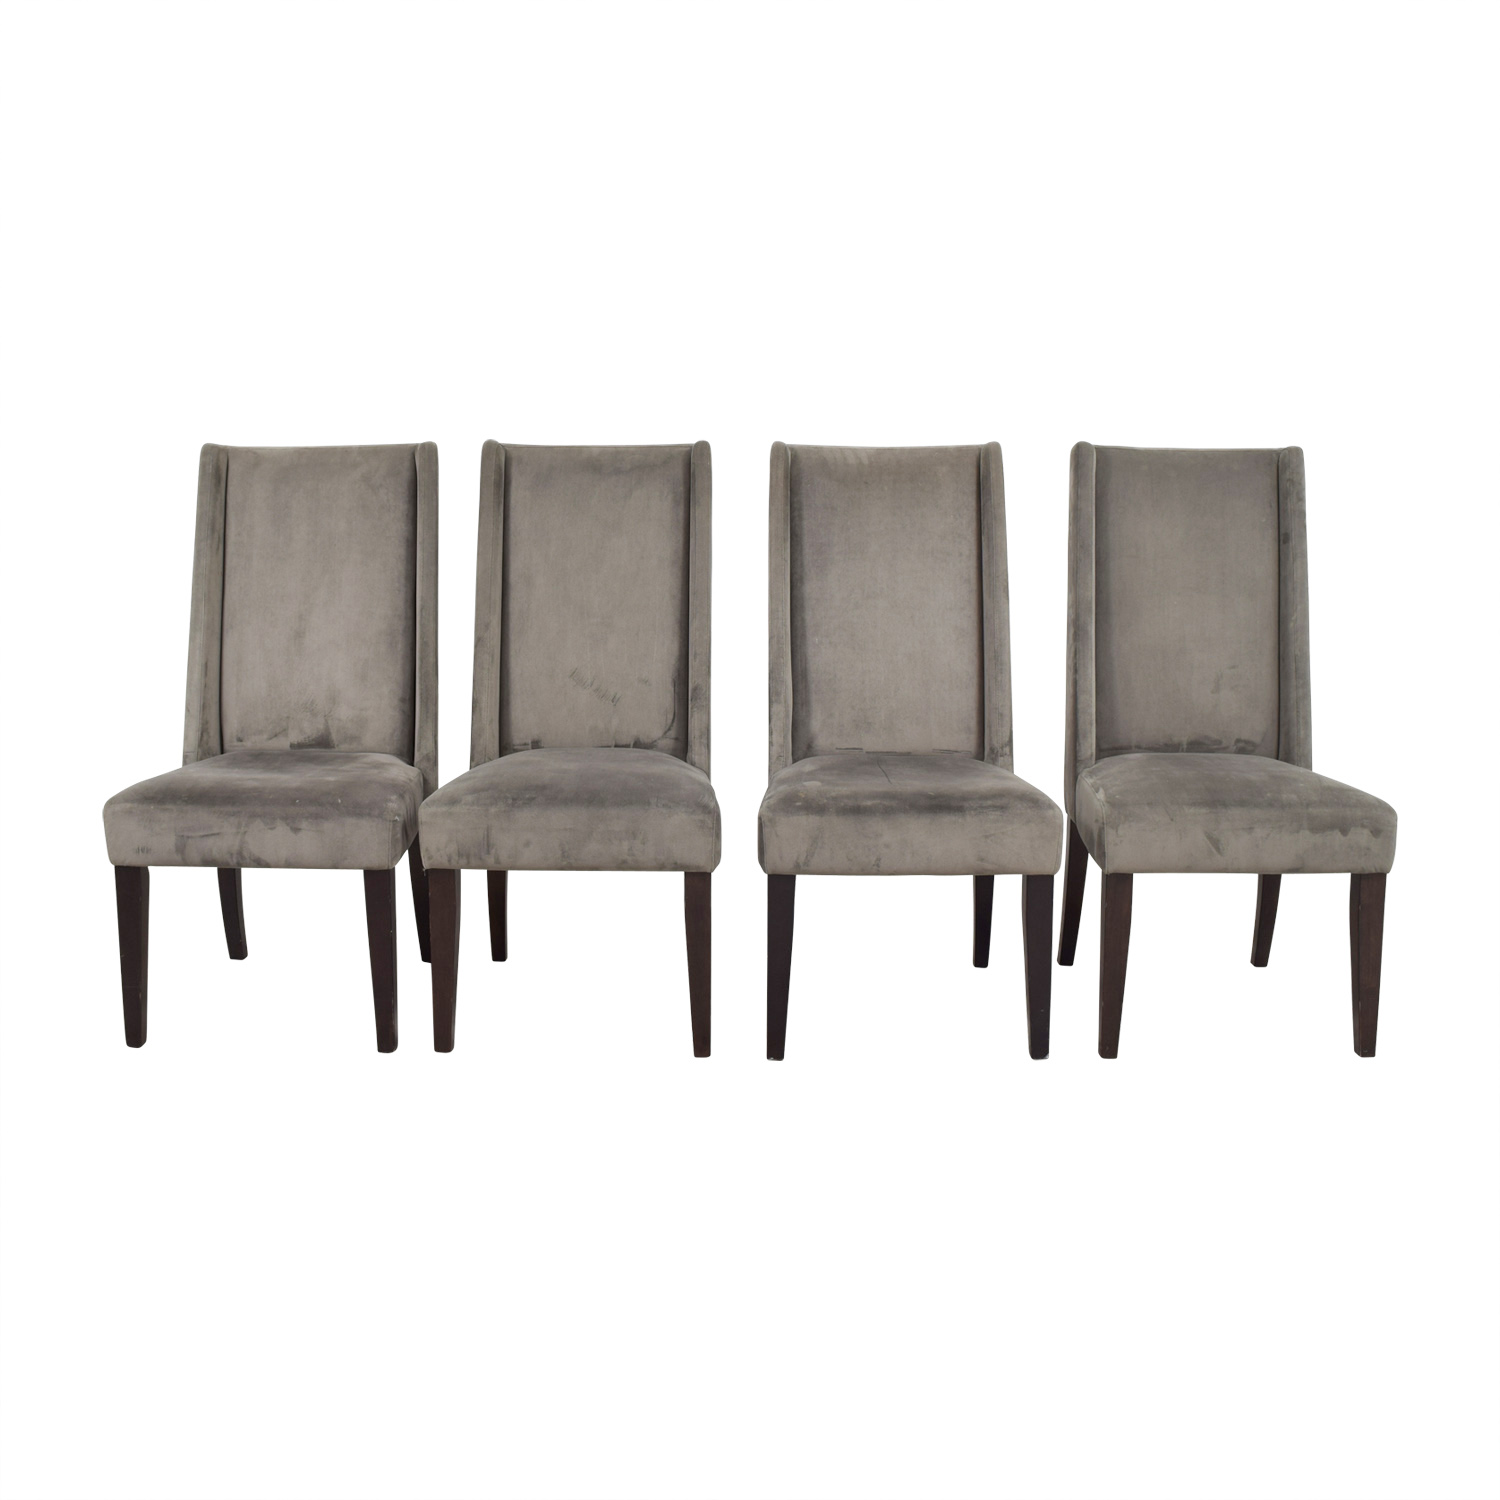 West Elm Velvet Dining Chairs / Dining Chairs